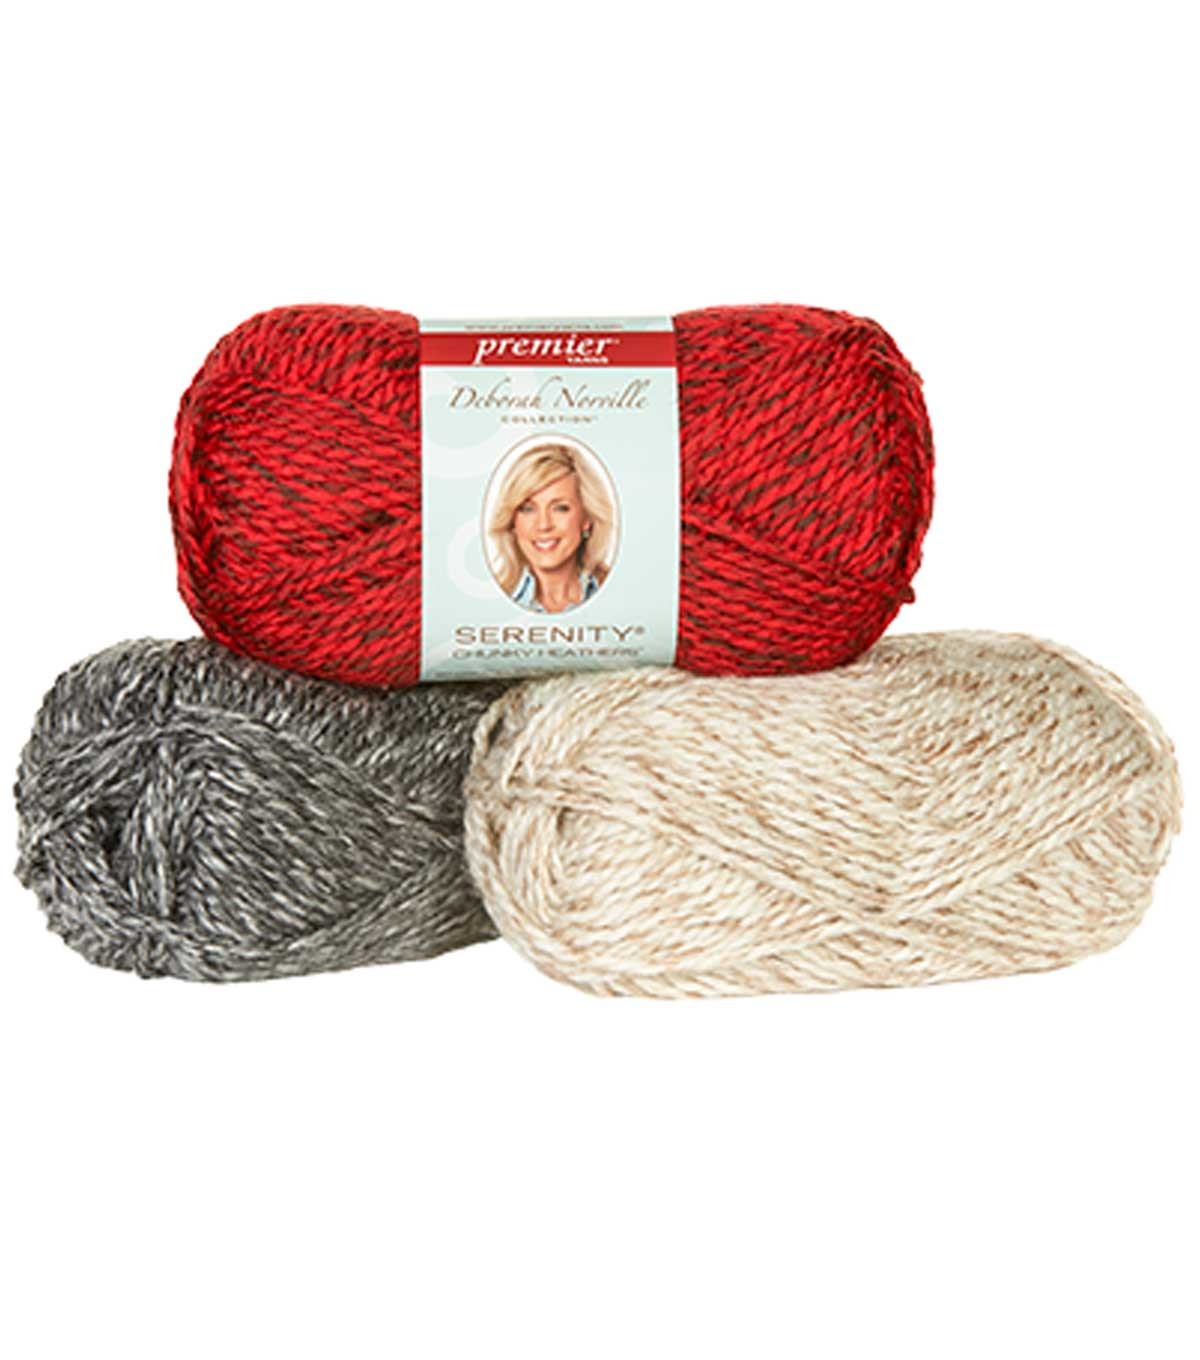 Chunky Yarn Awesome Deborah norville Serenity Chunky Yarn Of Wonderful 42 Images Chunky Yarn